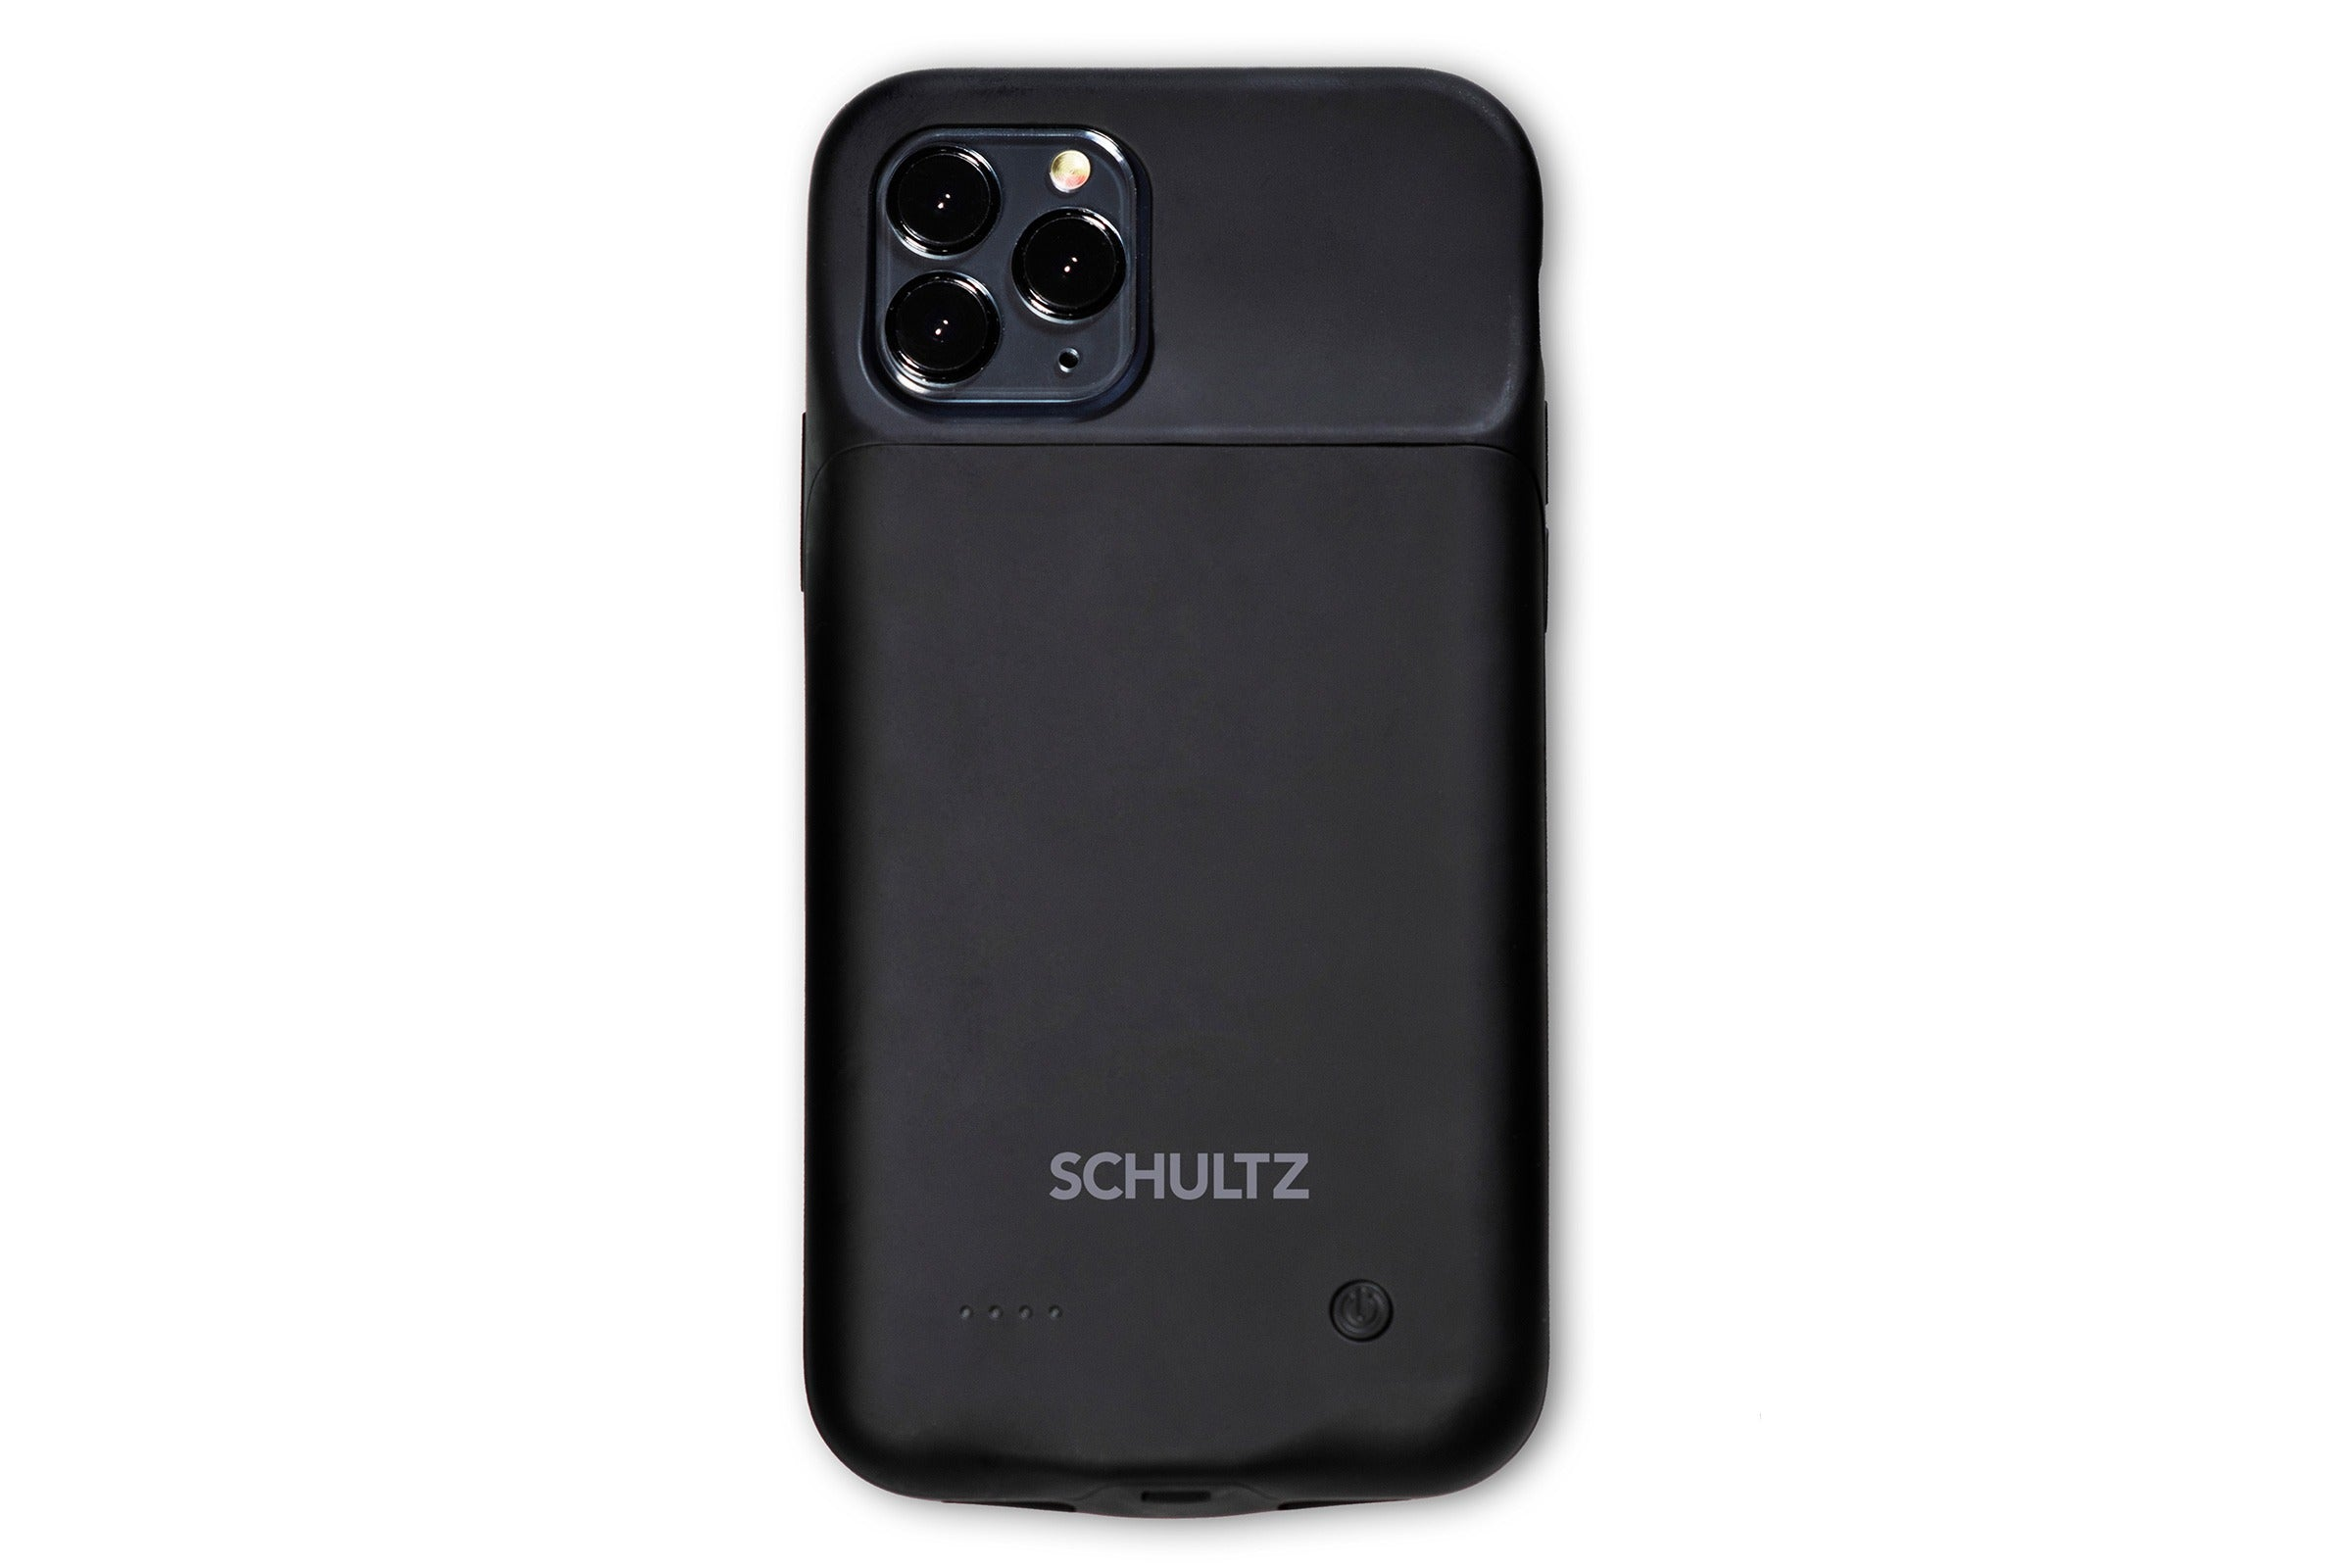 Schultz SmartPower Battery Case for iPhone 11 Pro Max